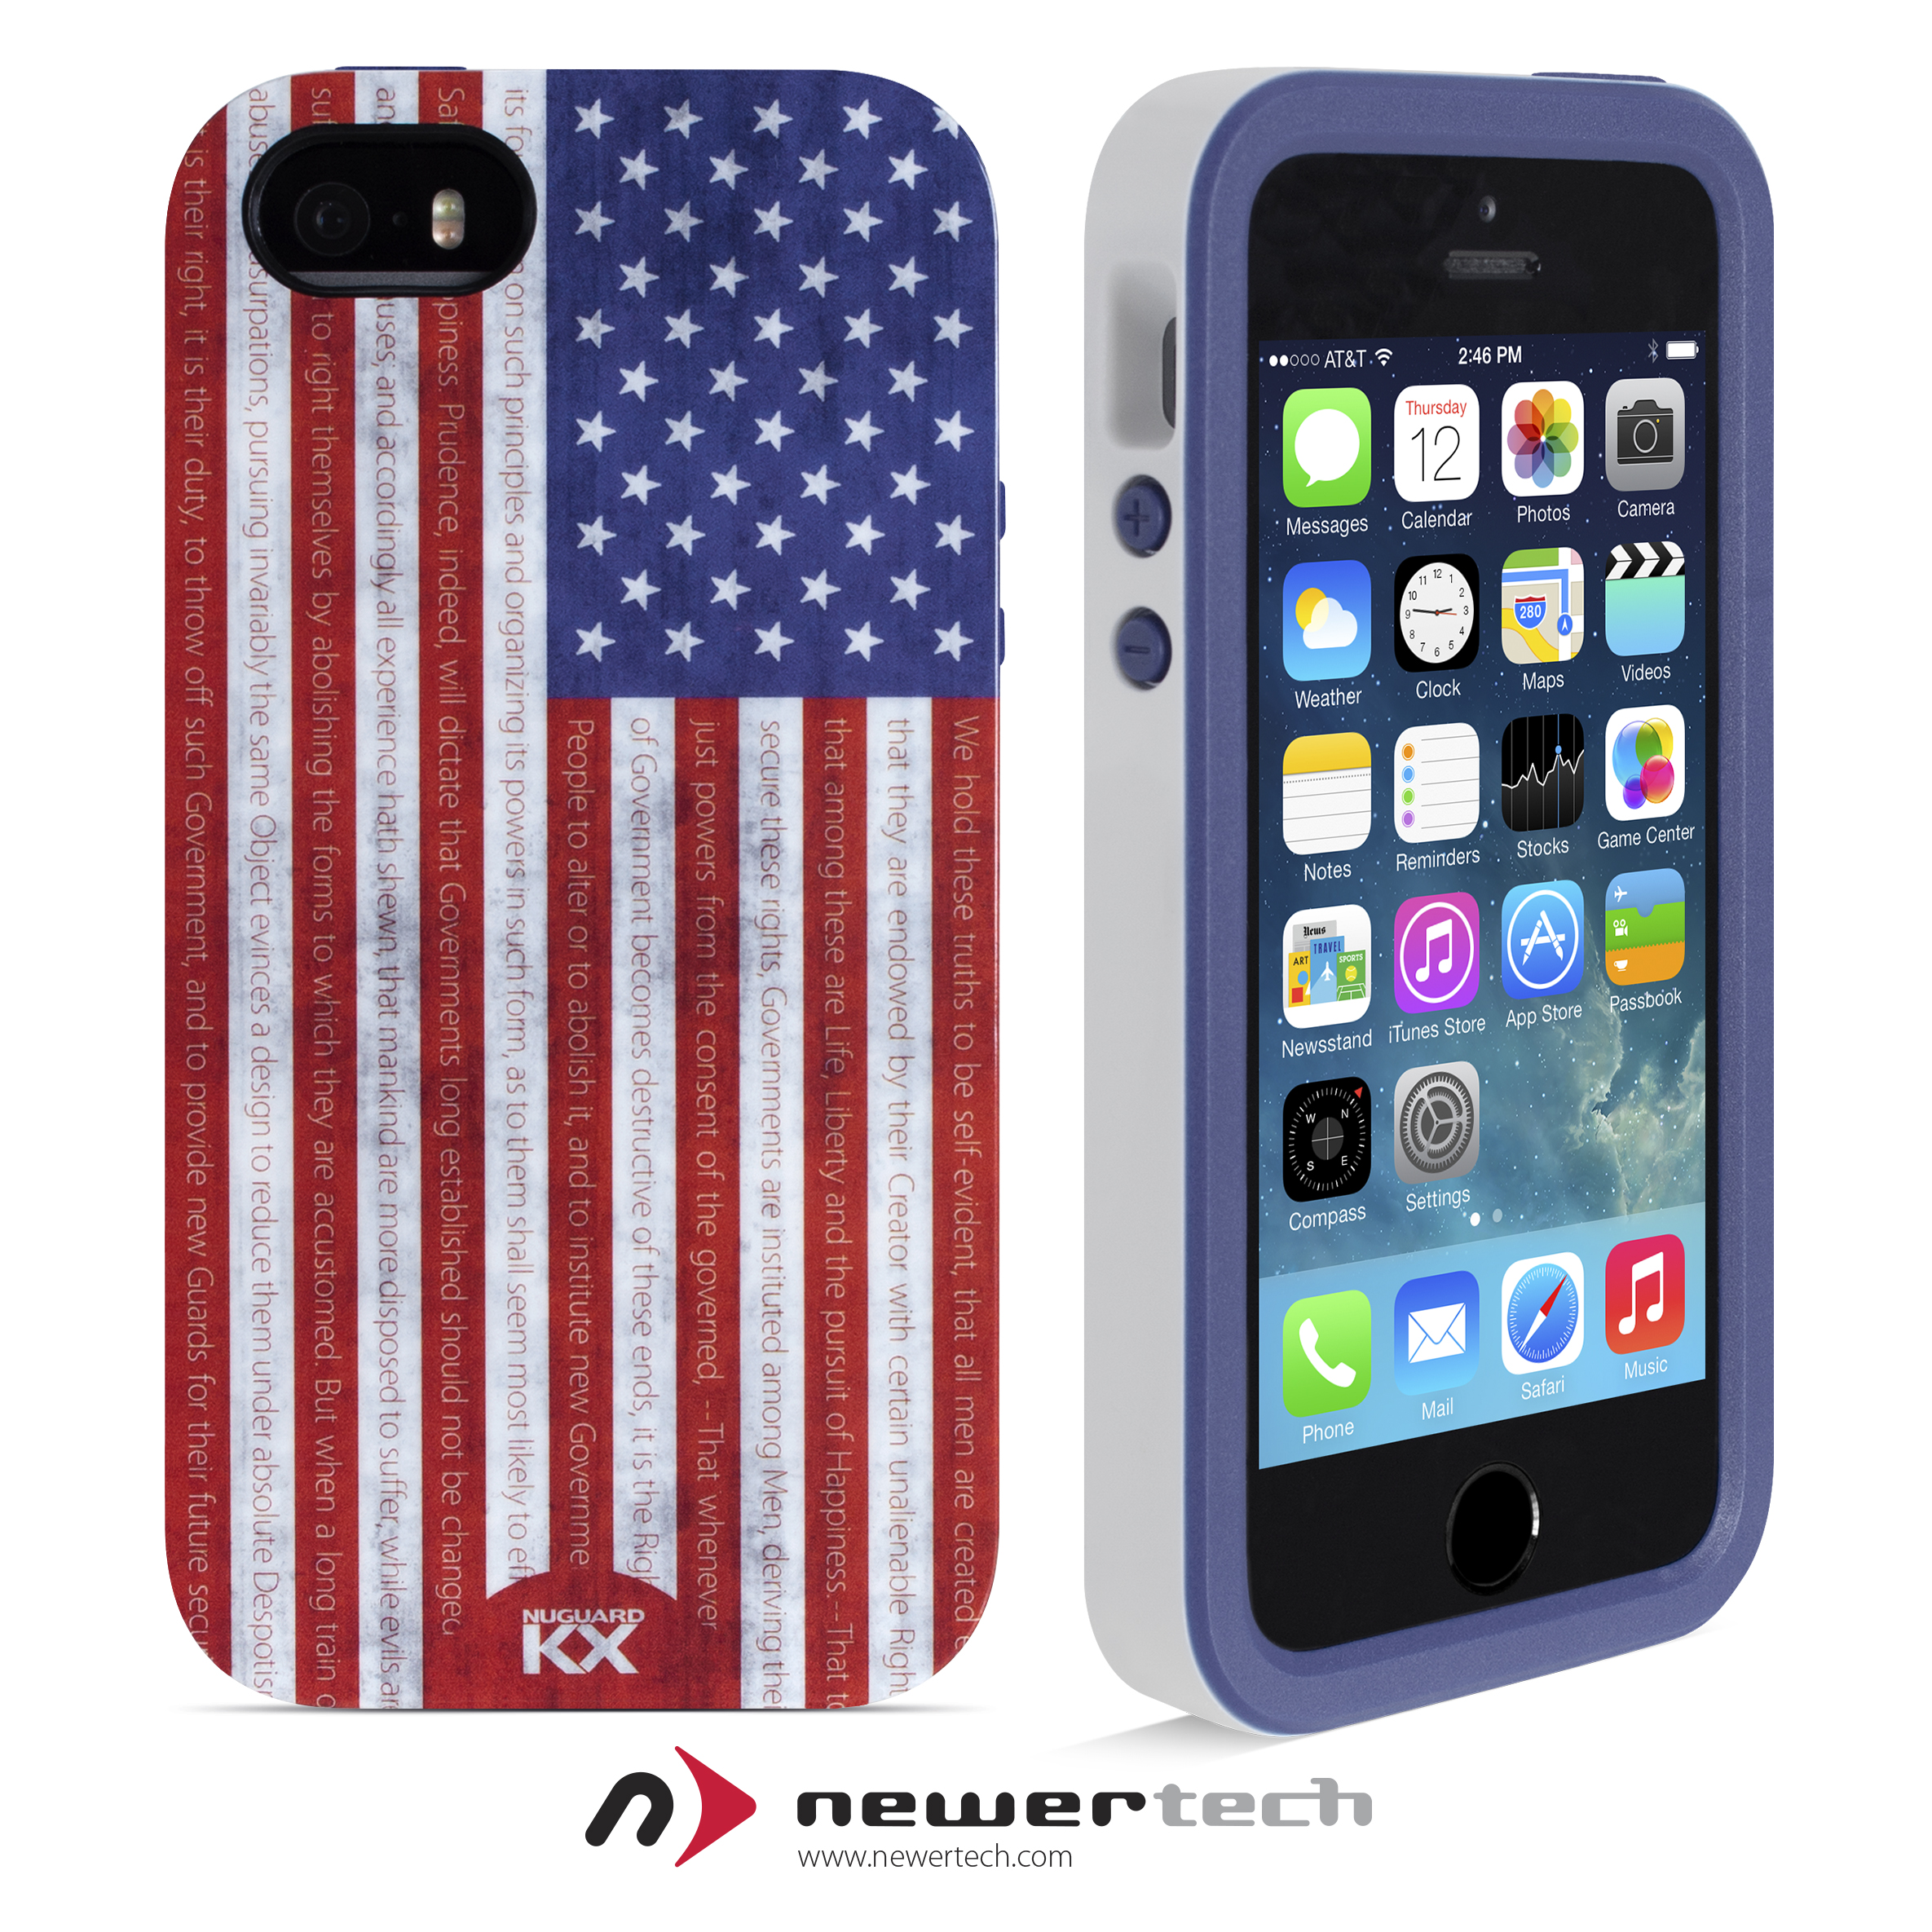 NuGuard KX Case for iPhone 5S - Stars & Stripes